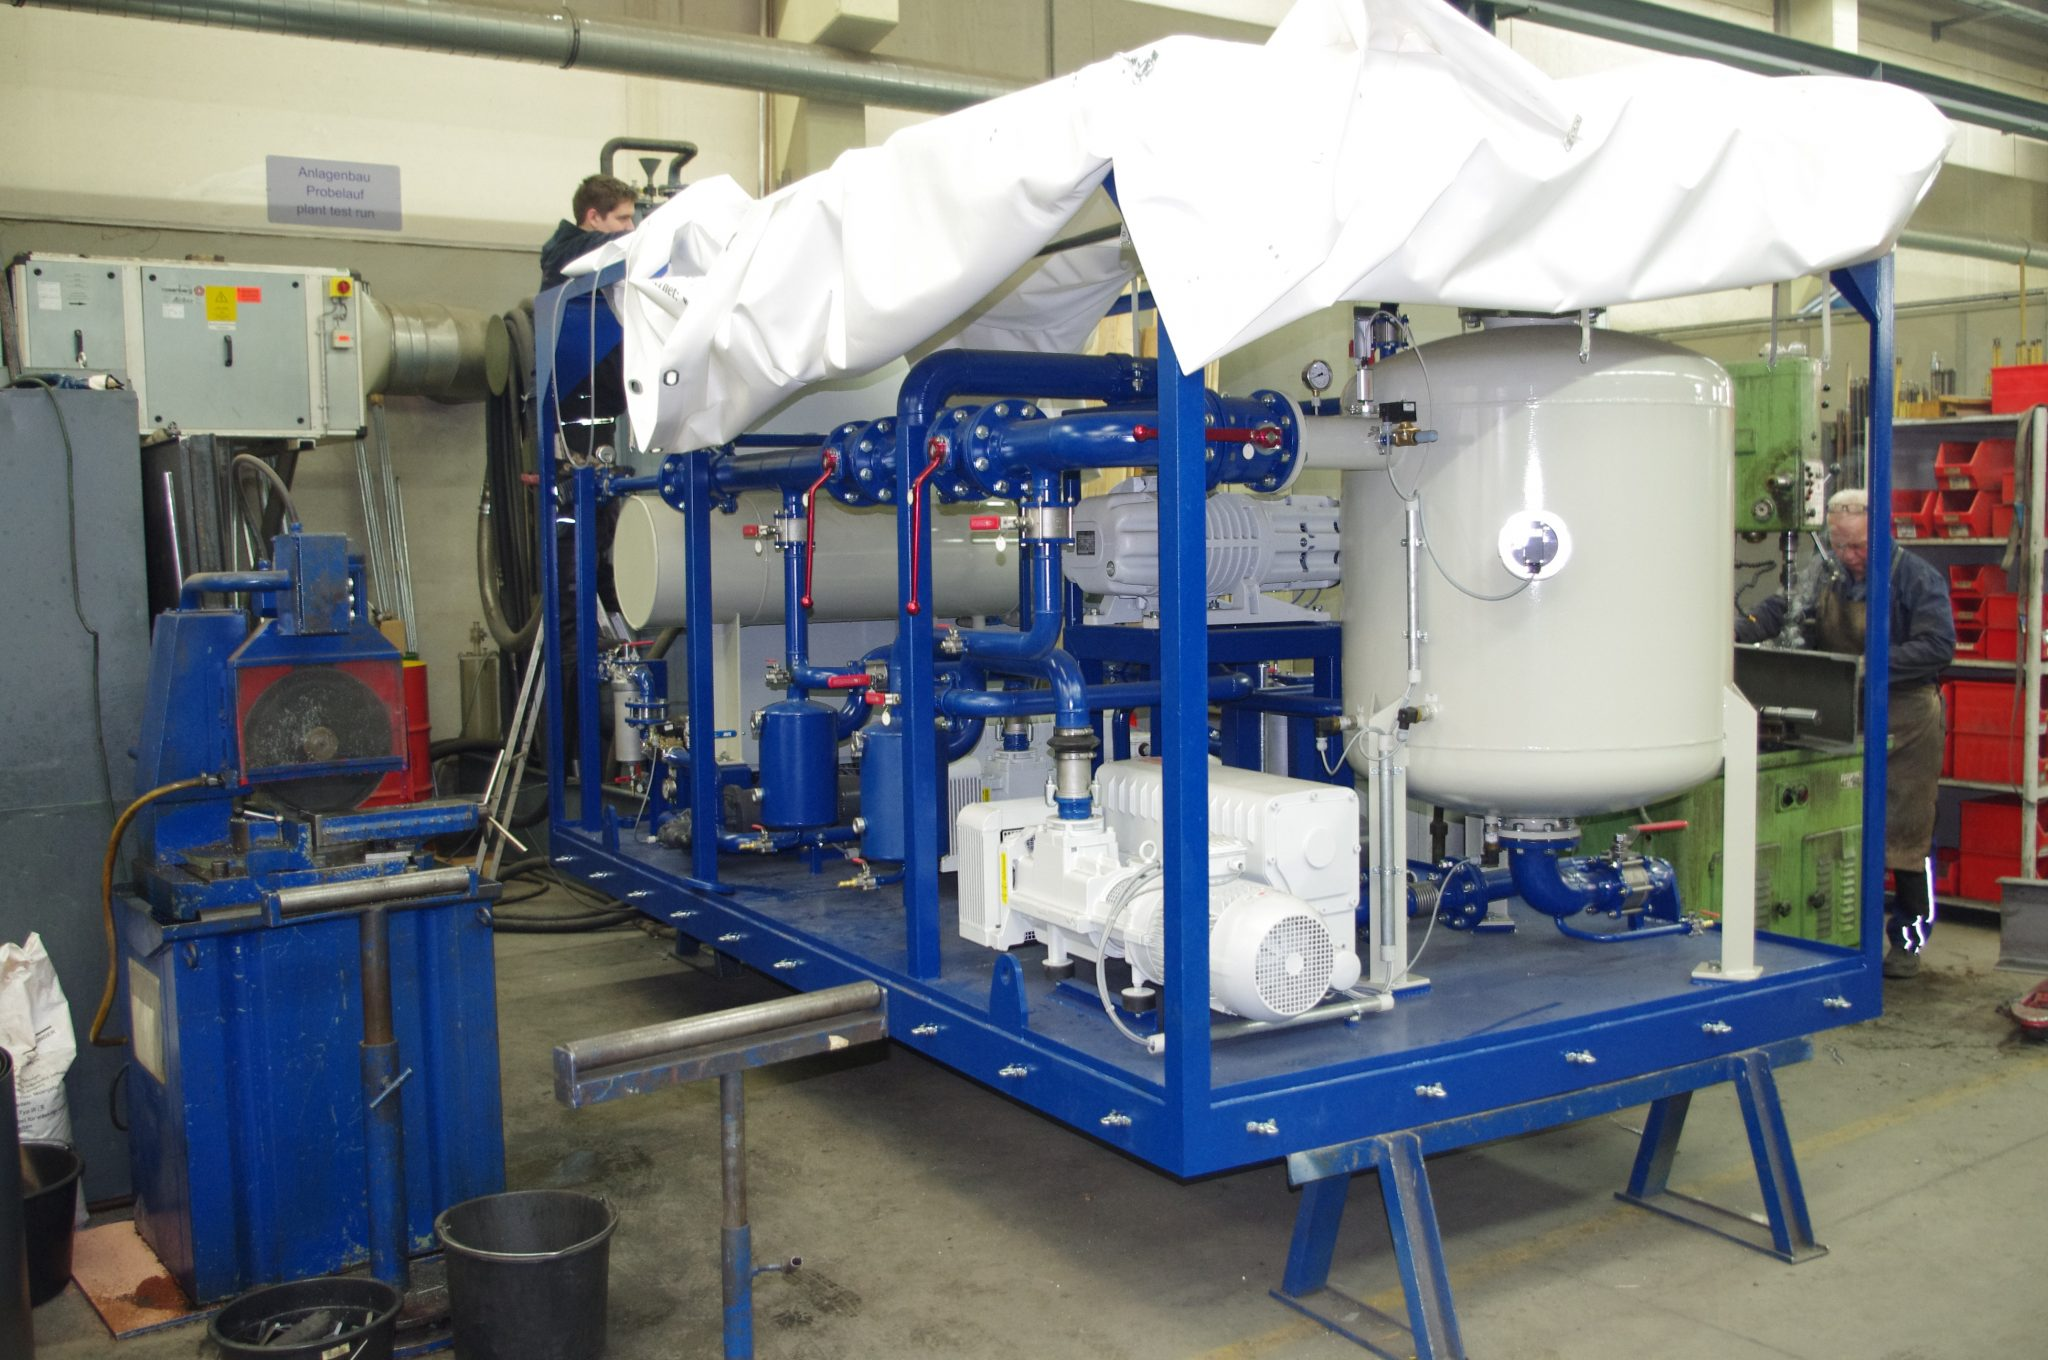 EOK Transformer Oil Purification Plant At German Workshop